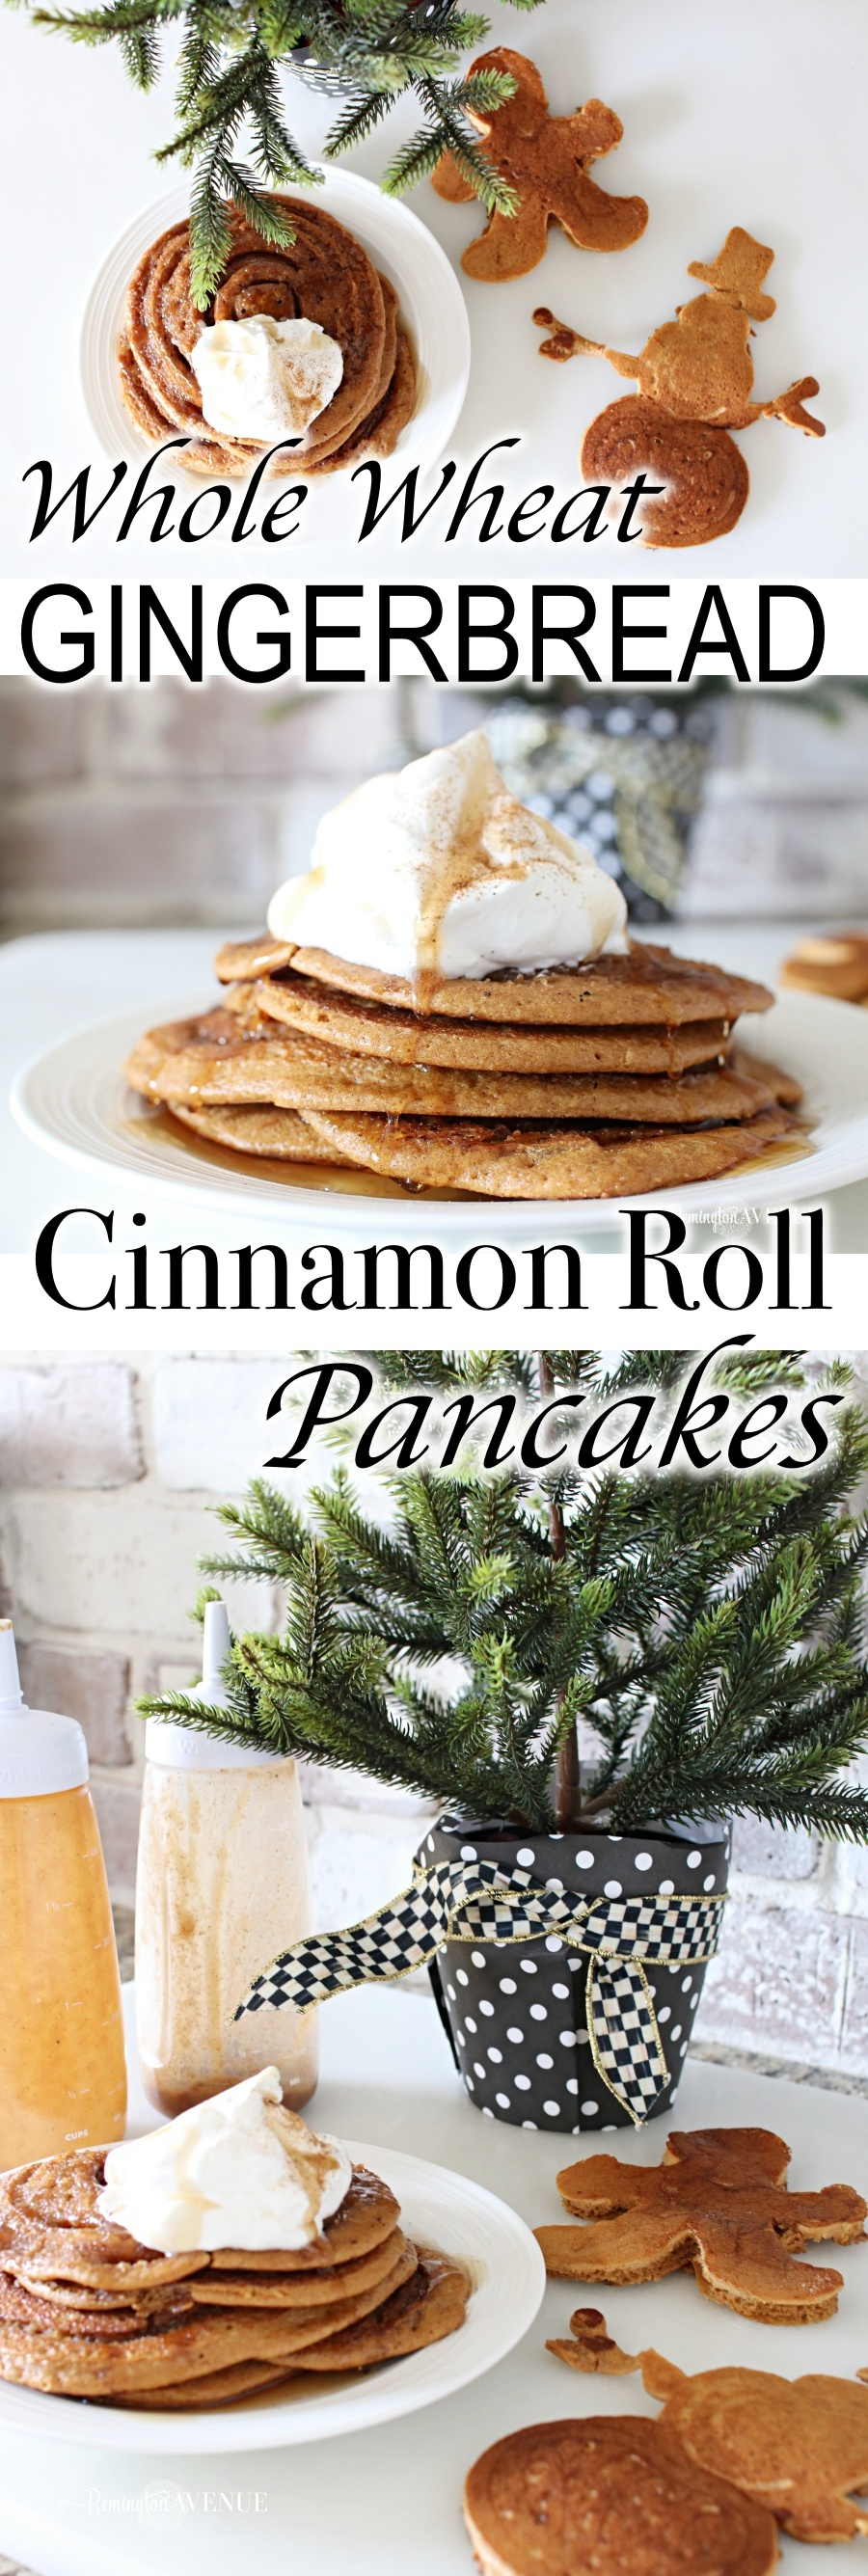 whole wheat gingerbread cinnamon roll pancakes + promo code for pancake art kit